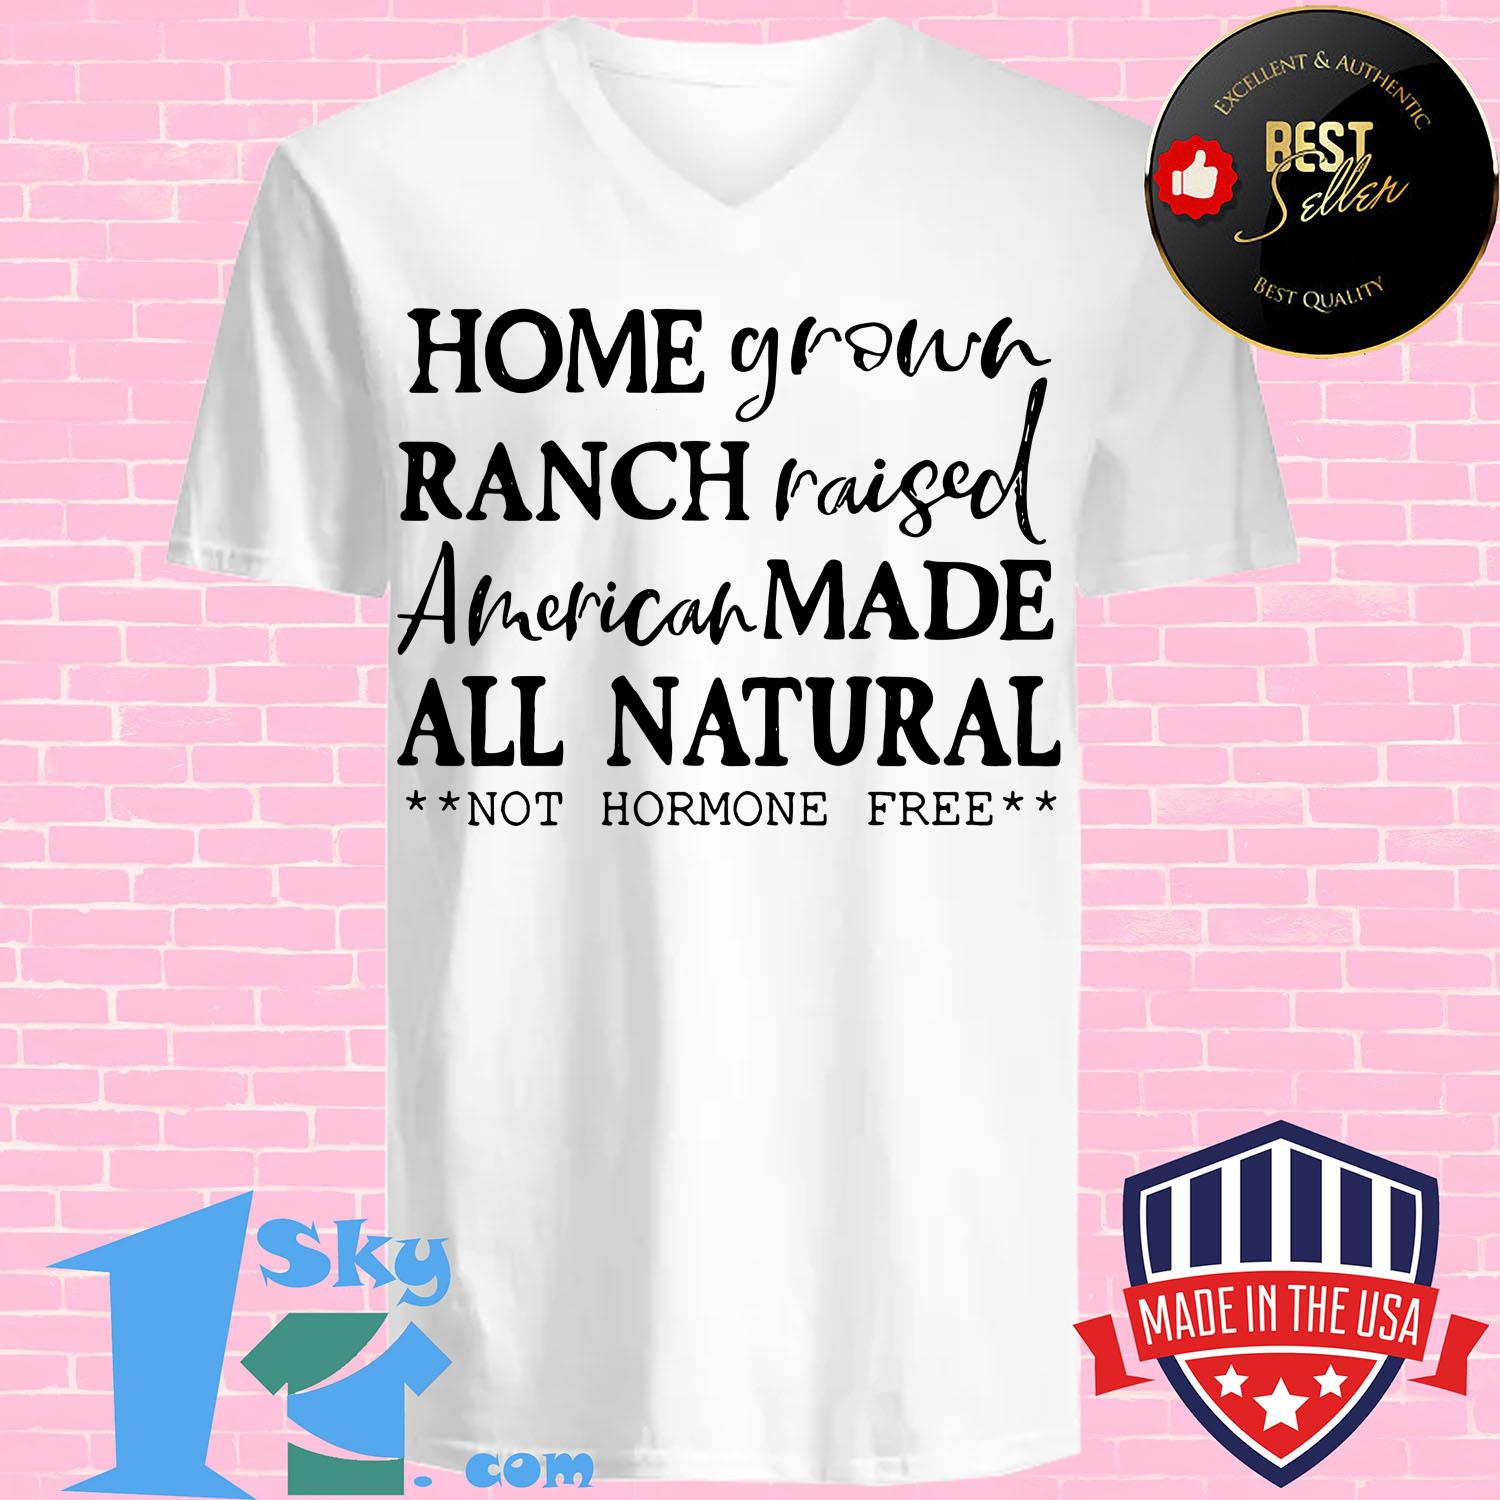 homegrown ranch raised american made all natural not hormone free v neck - Homegrown Ranch raised American made All Natural not Hormone free shirt